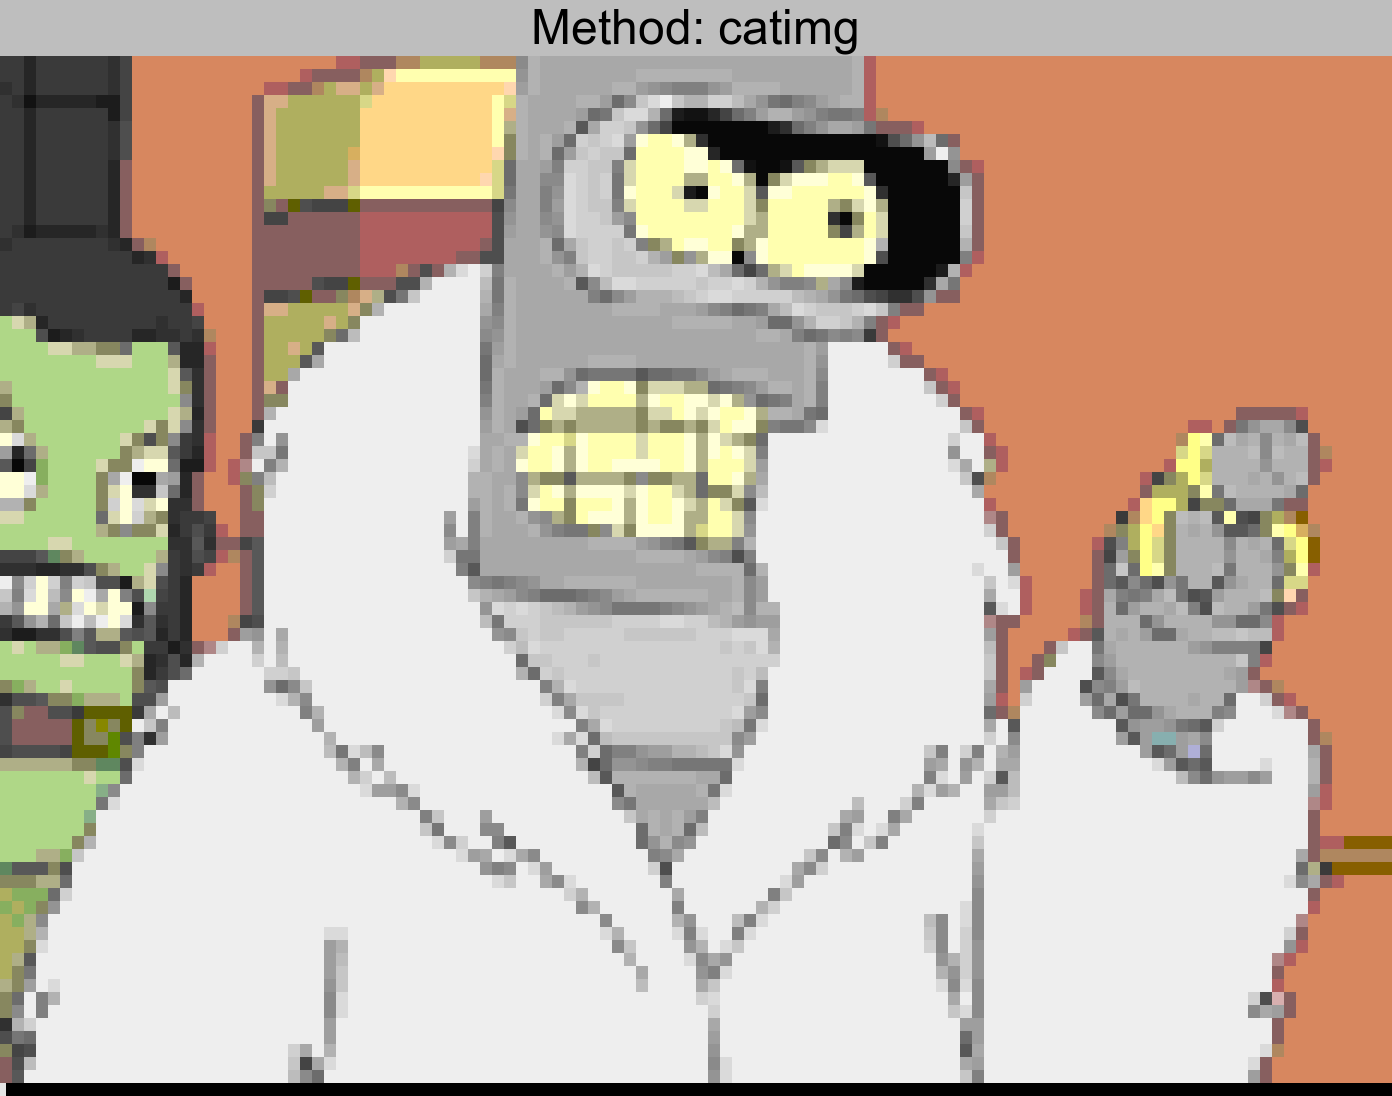 bender.png converted using catimg